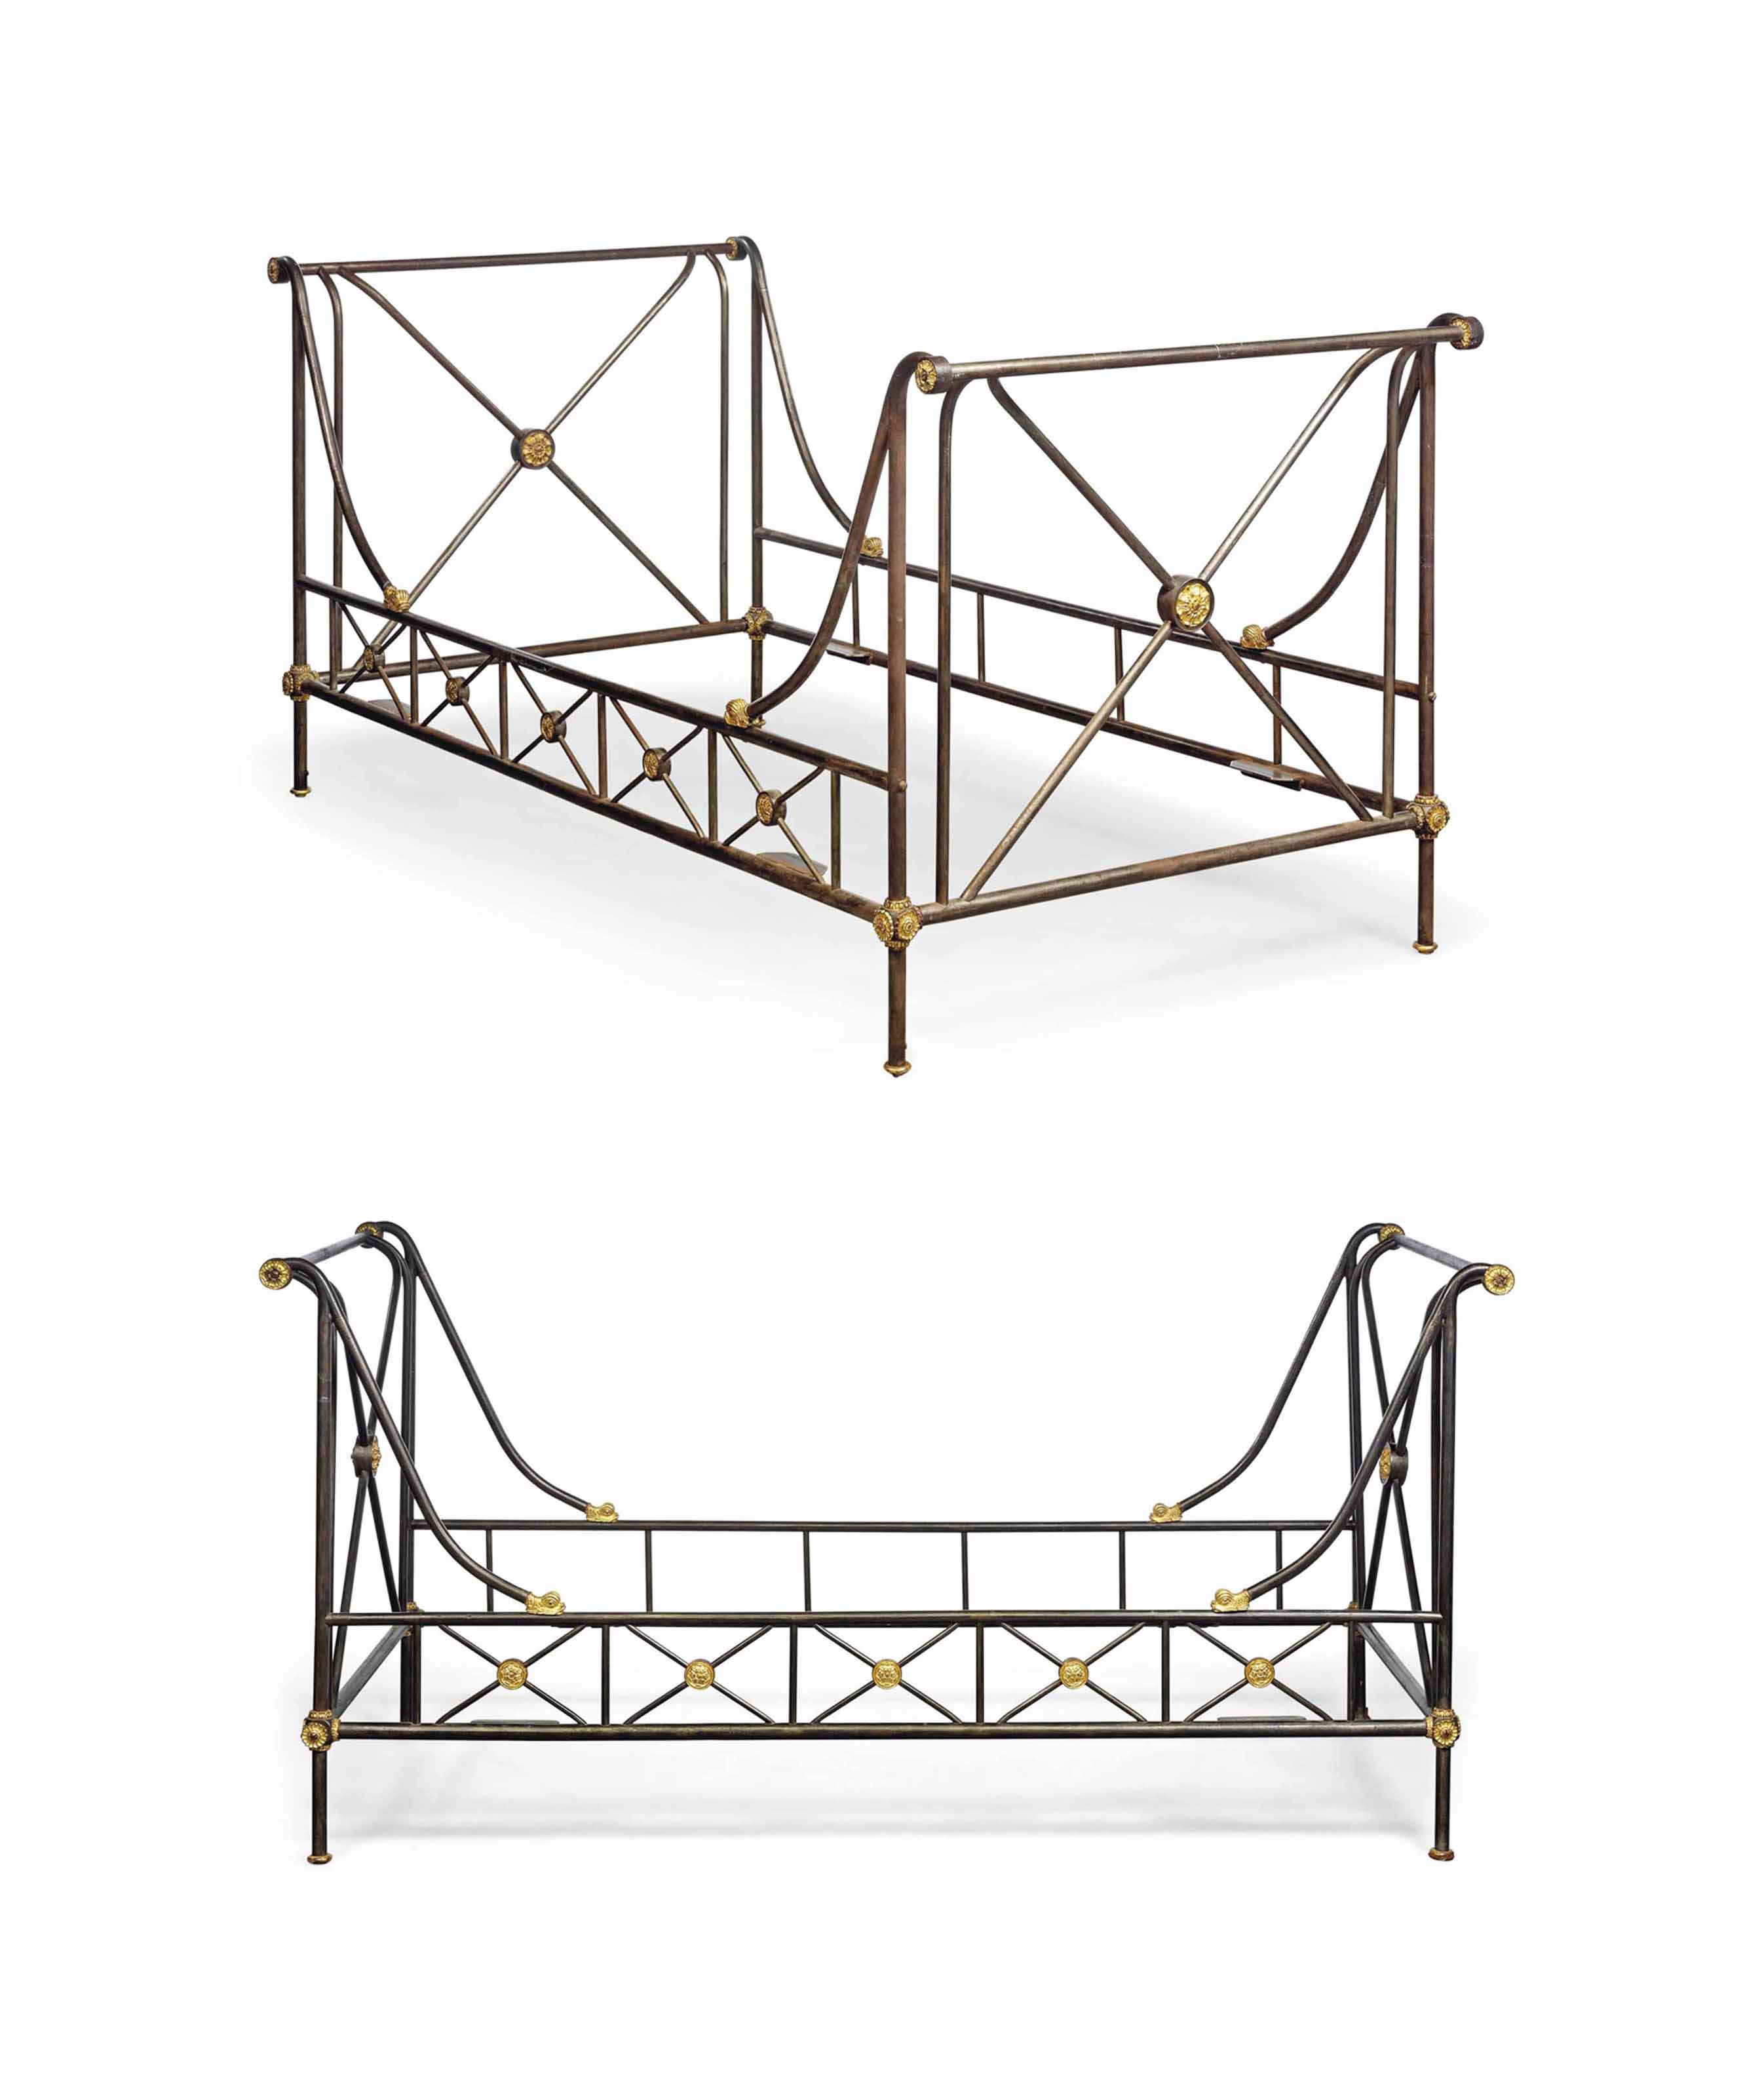 A NEAR PAIR OF EMPIRE STYLE PARCEL-GILT AND PATINATED STEEL BEDS